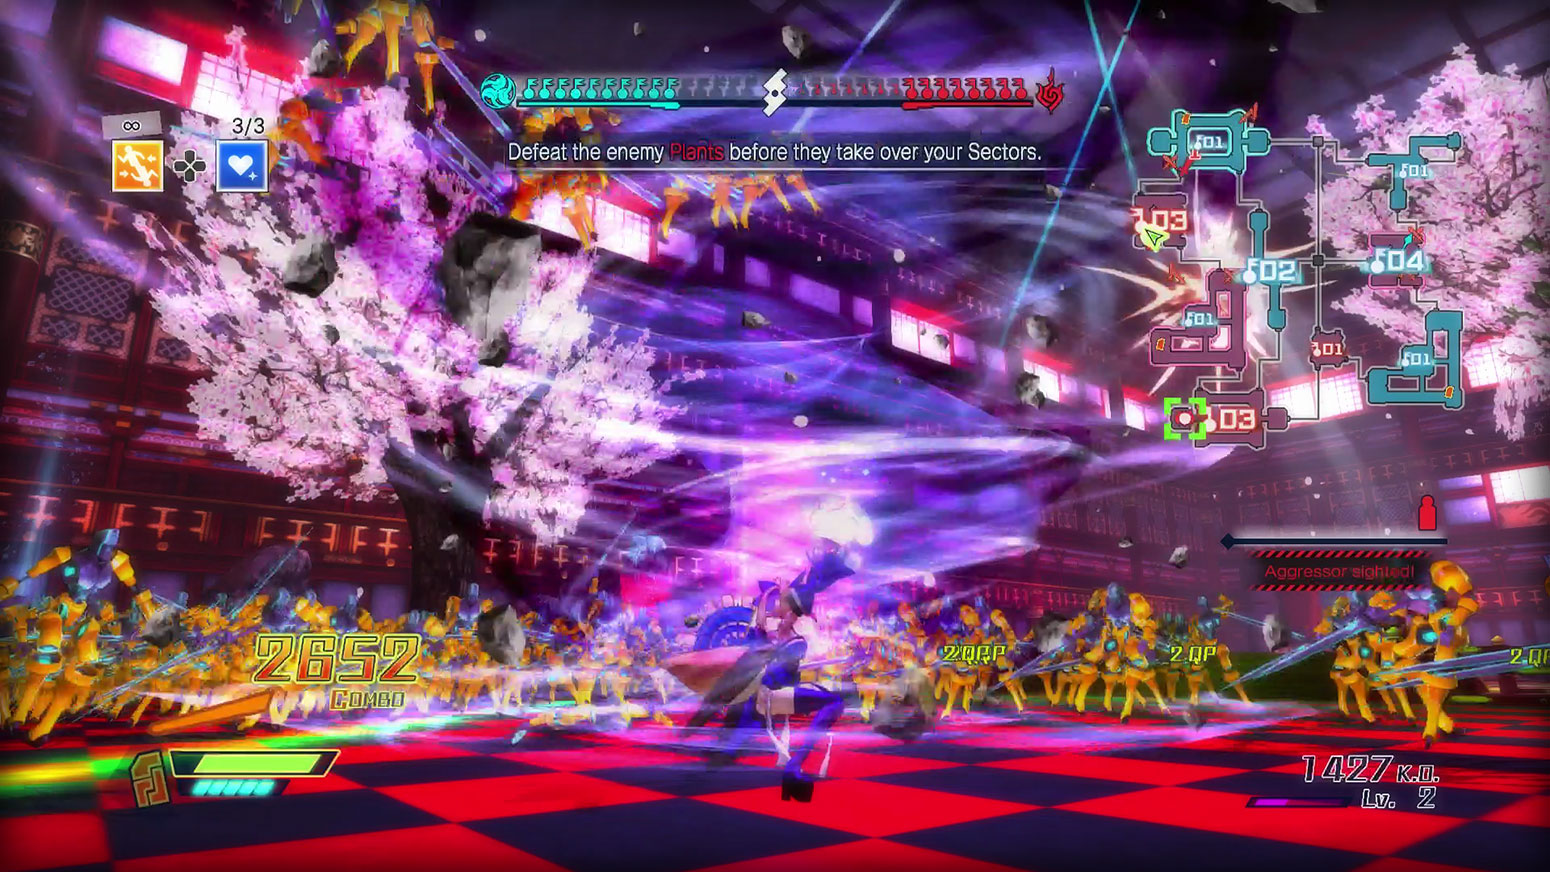 Fate/EXTELLA: The Umbral Star - High Speed Servant Action Screenshot 2